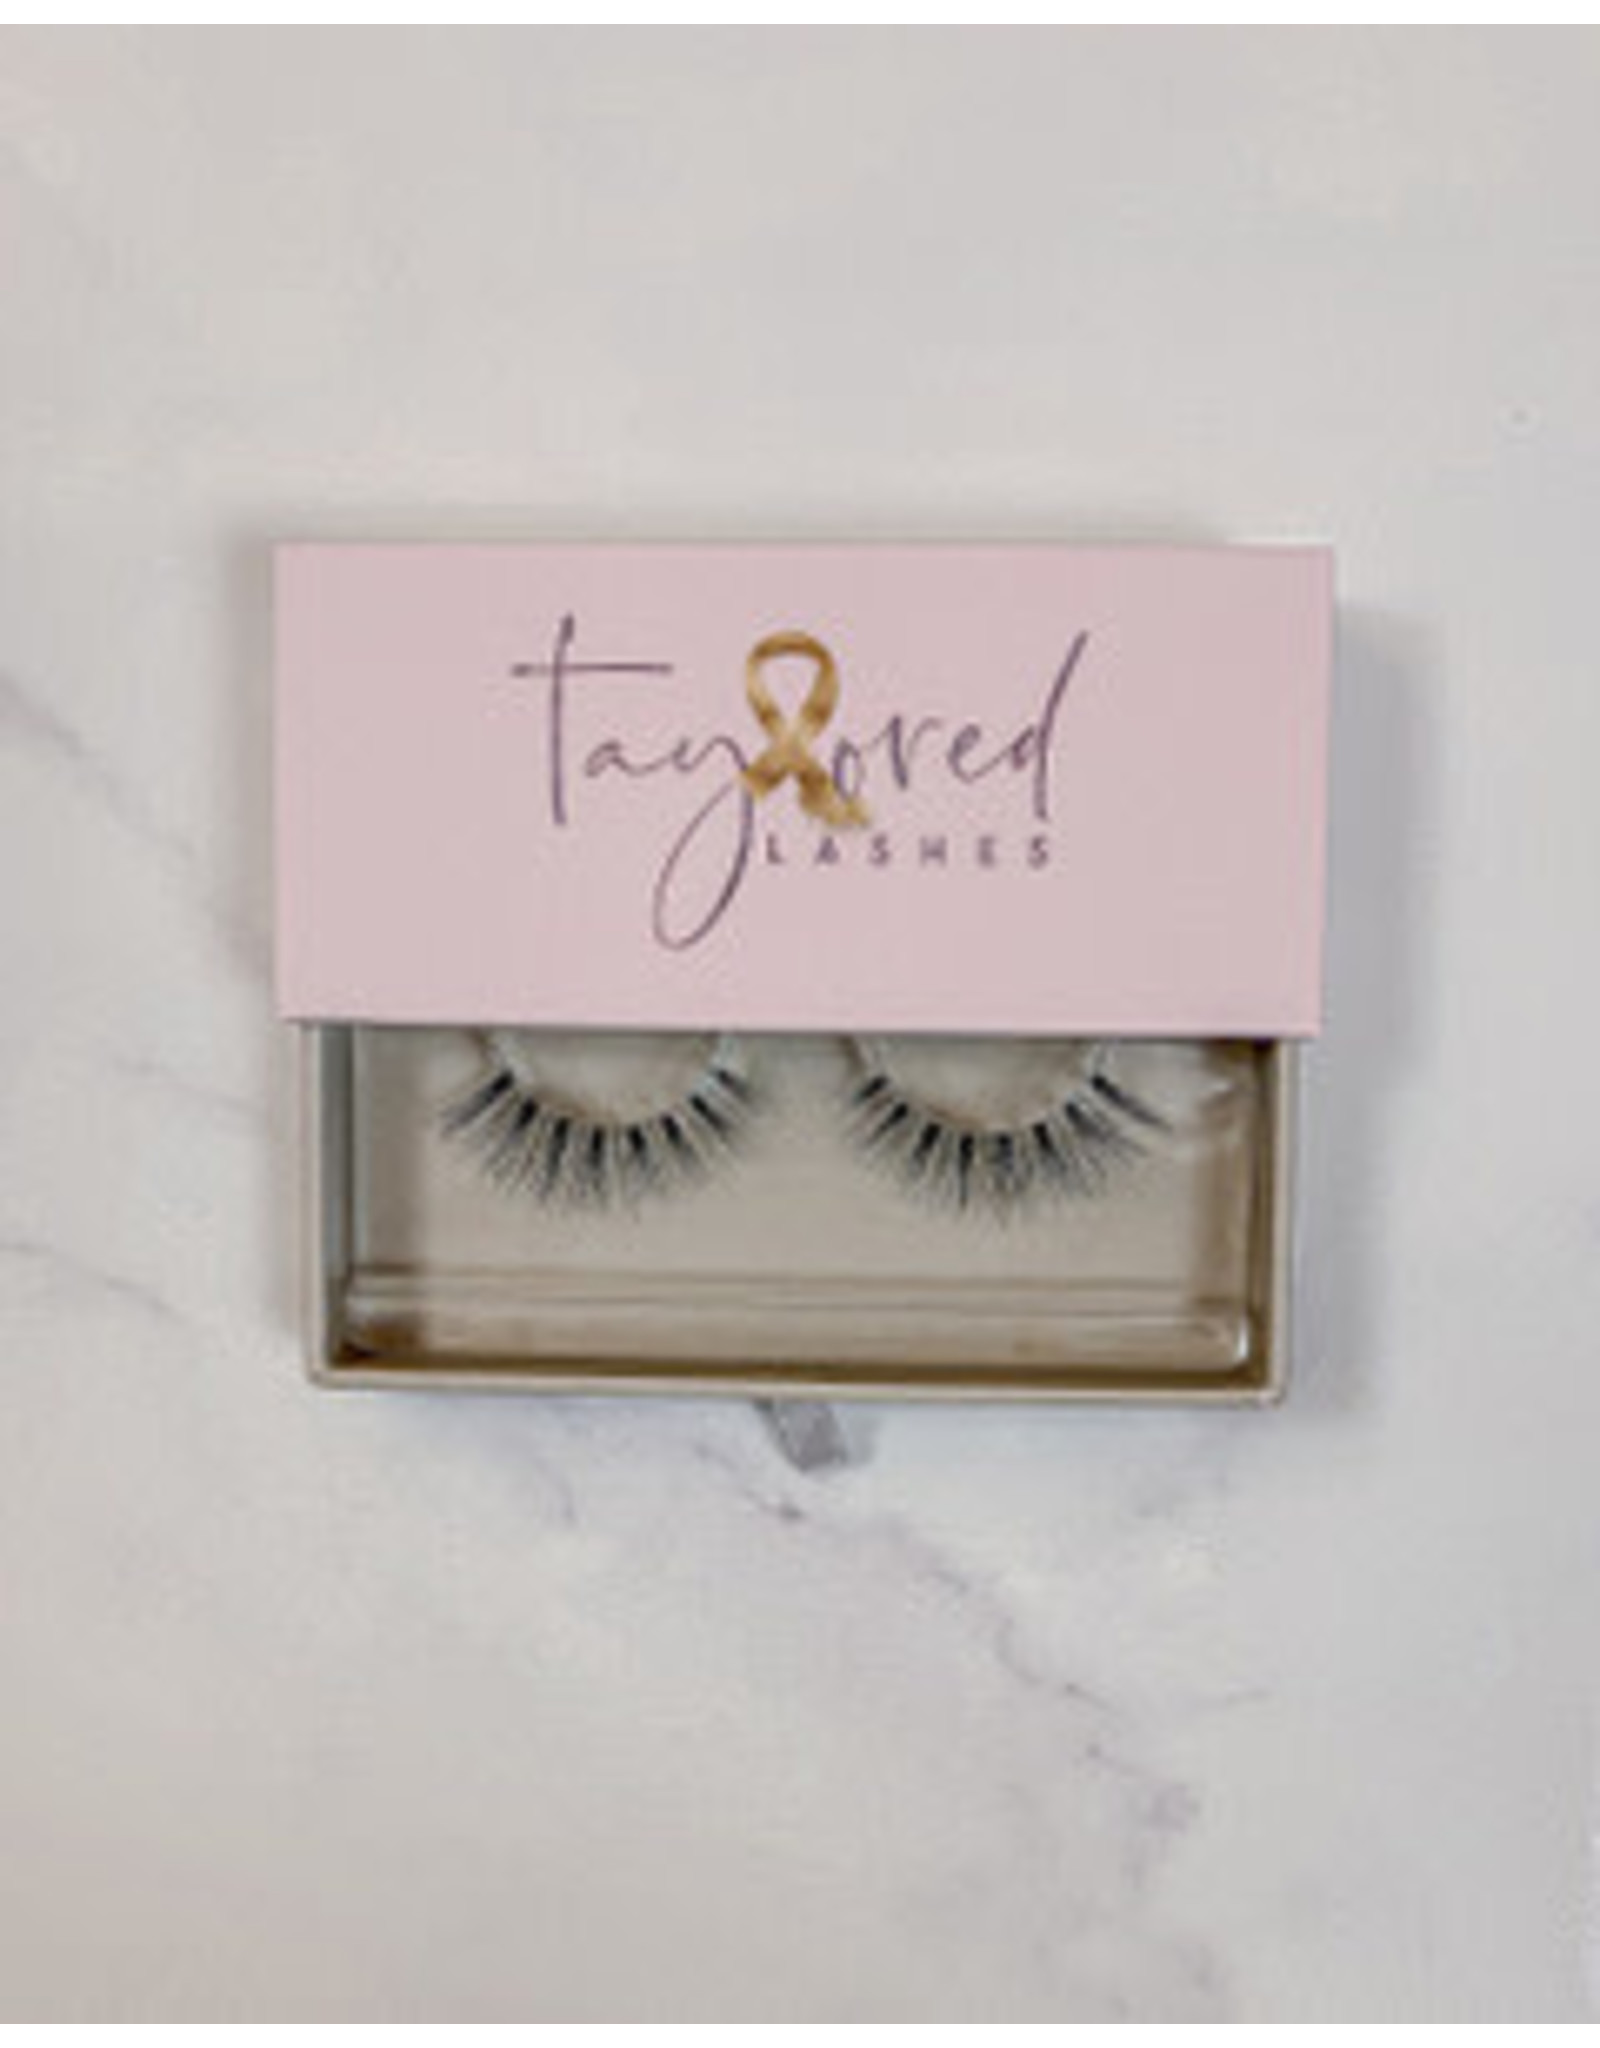 Taylored Lashes Happy Hour